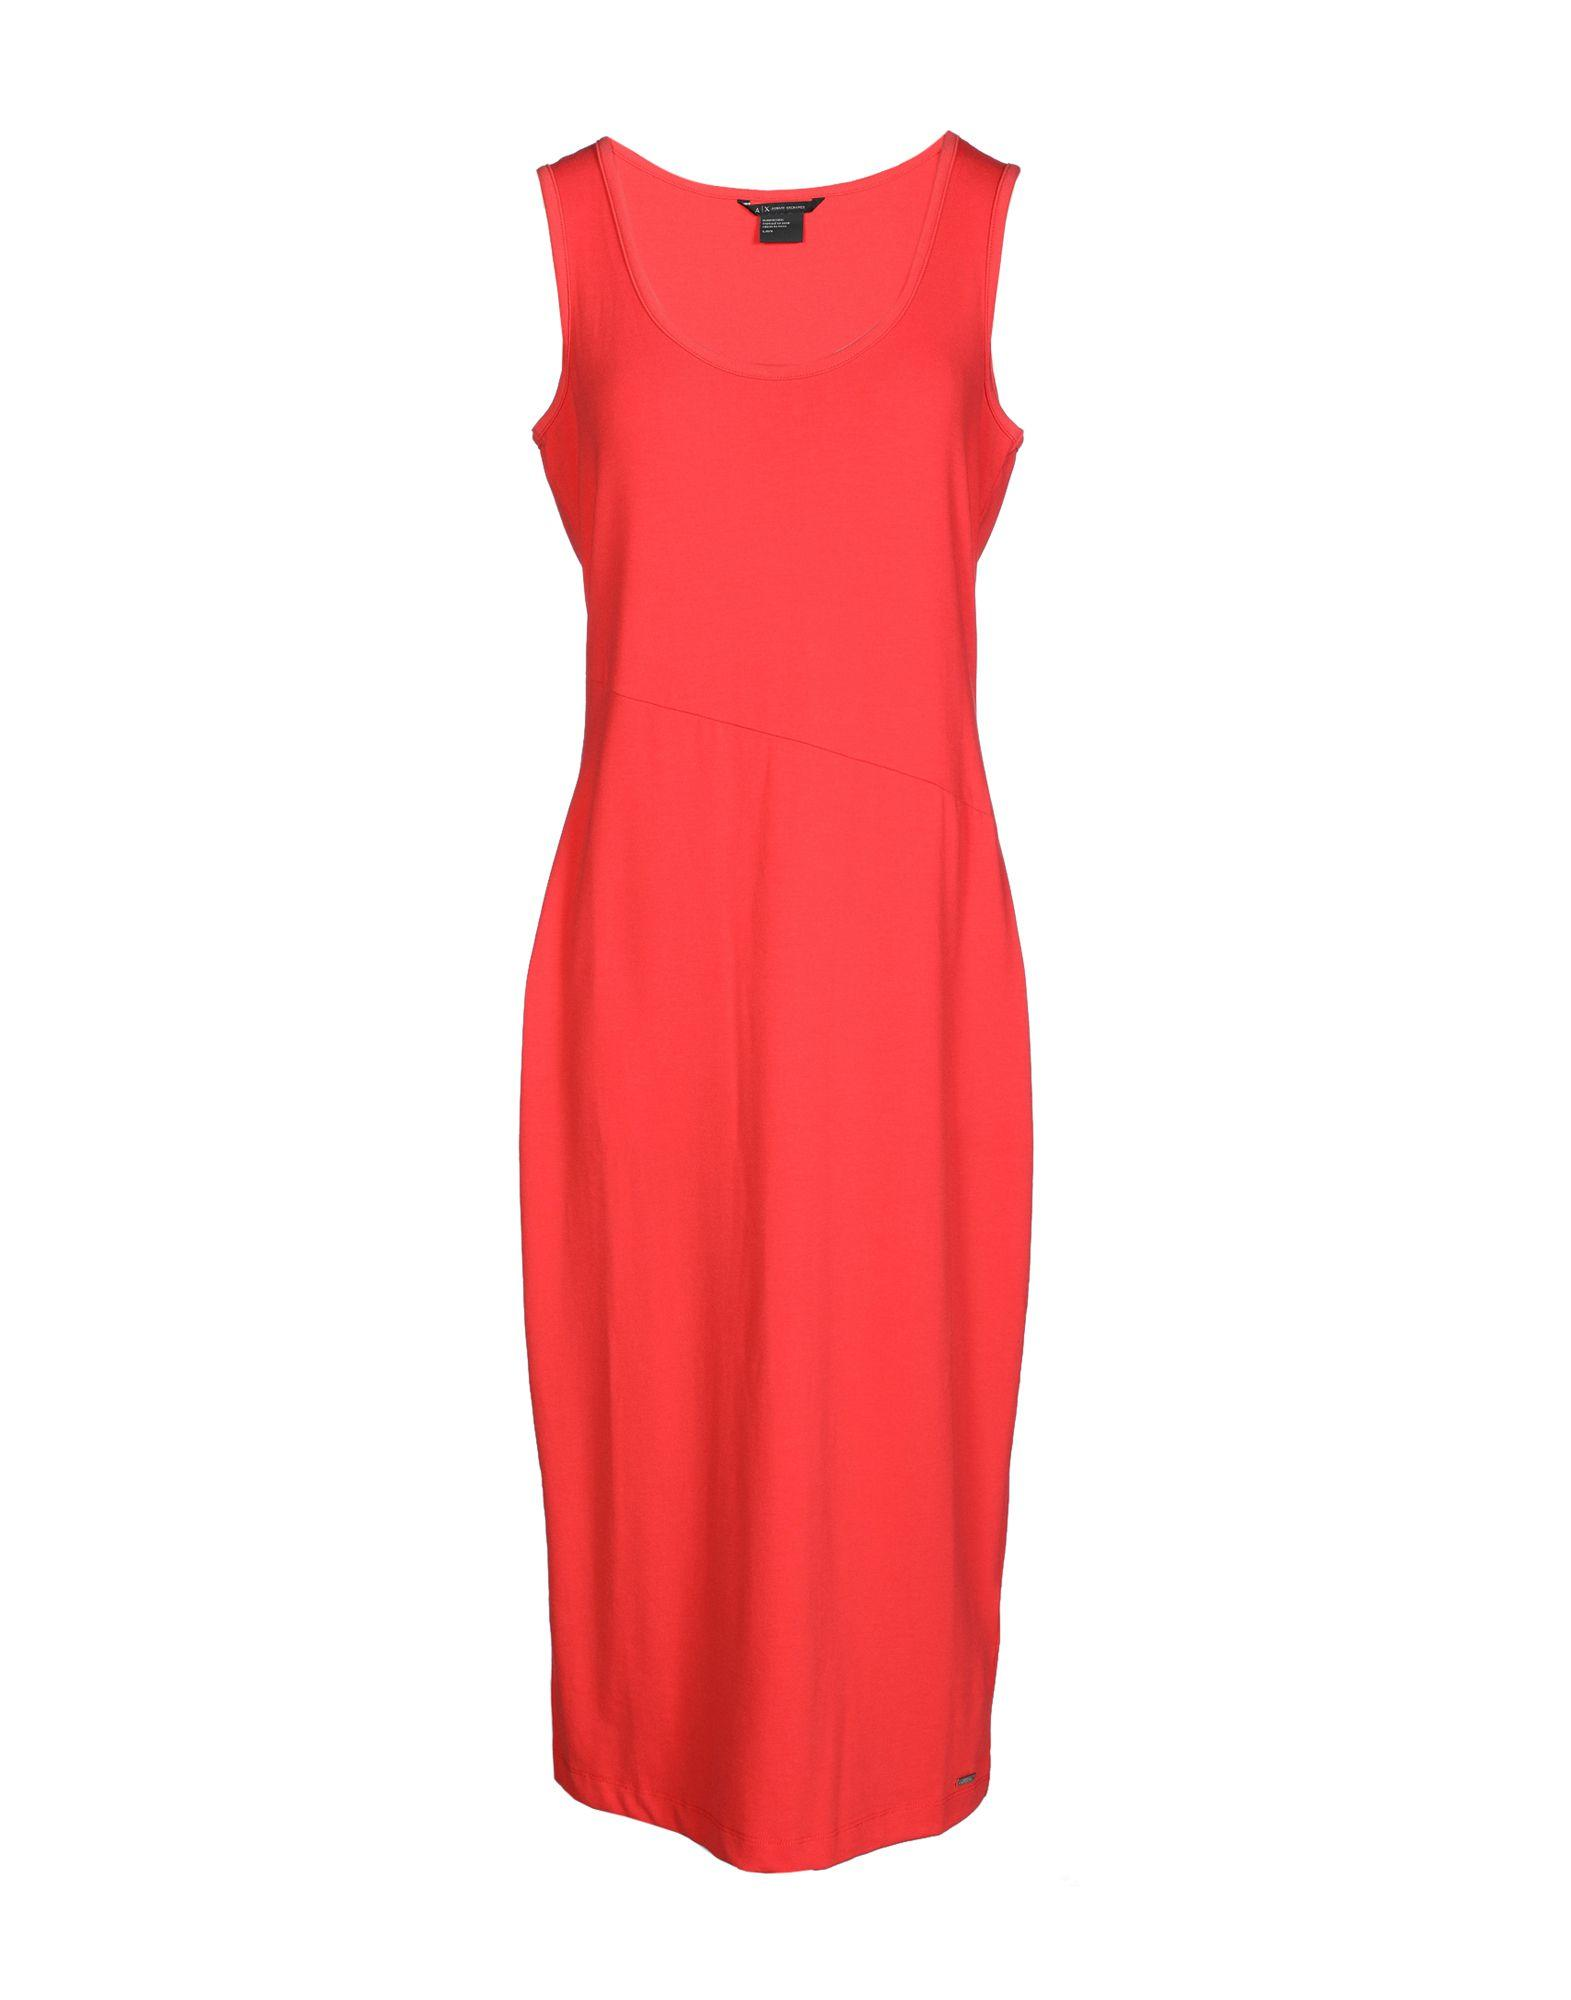 Armani Exchange 3/4 Length Dresses In Coral